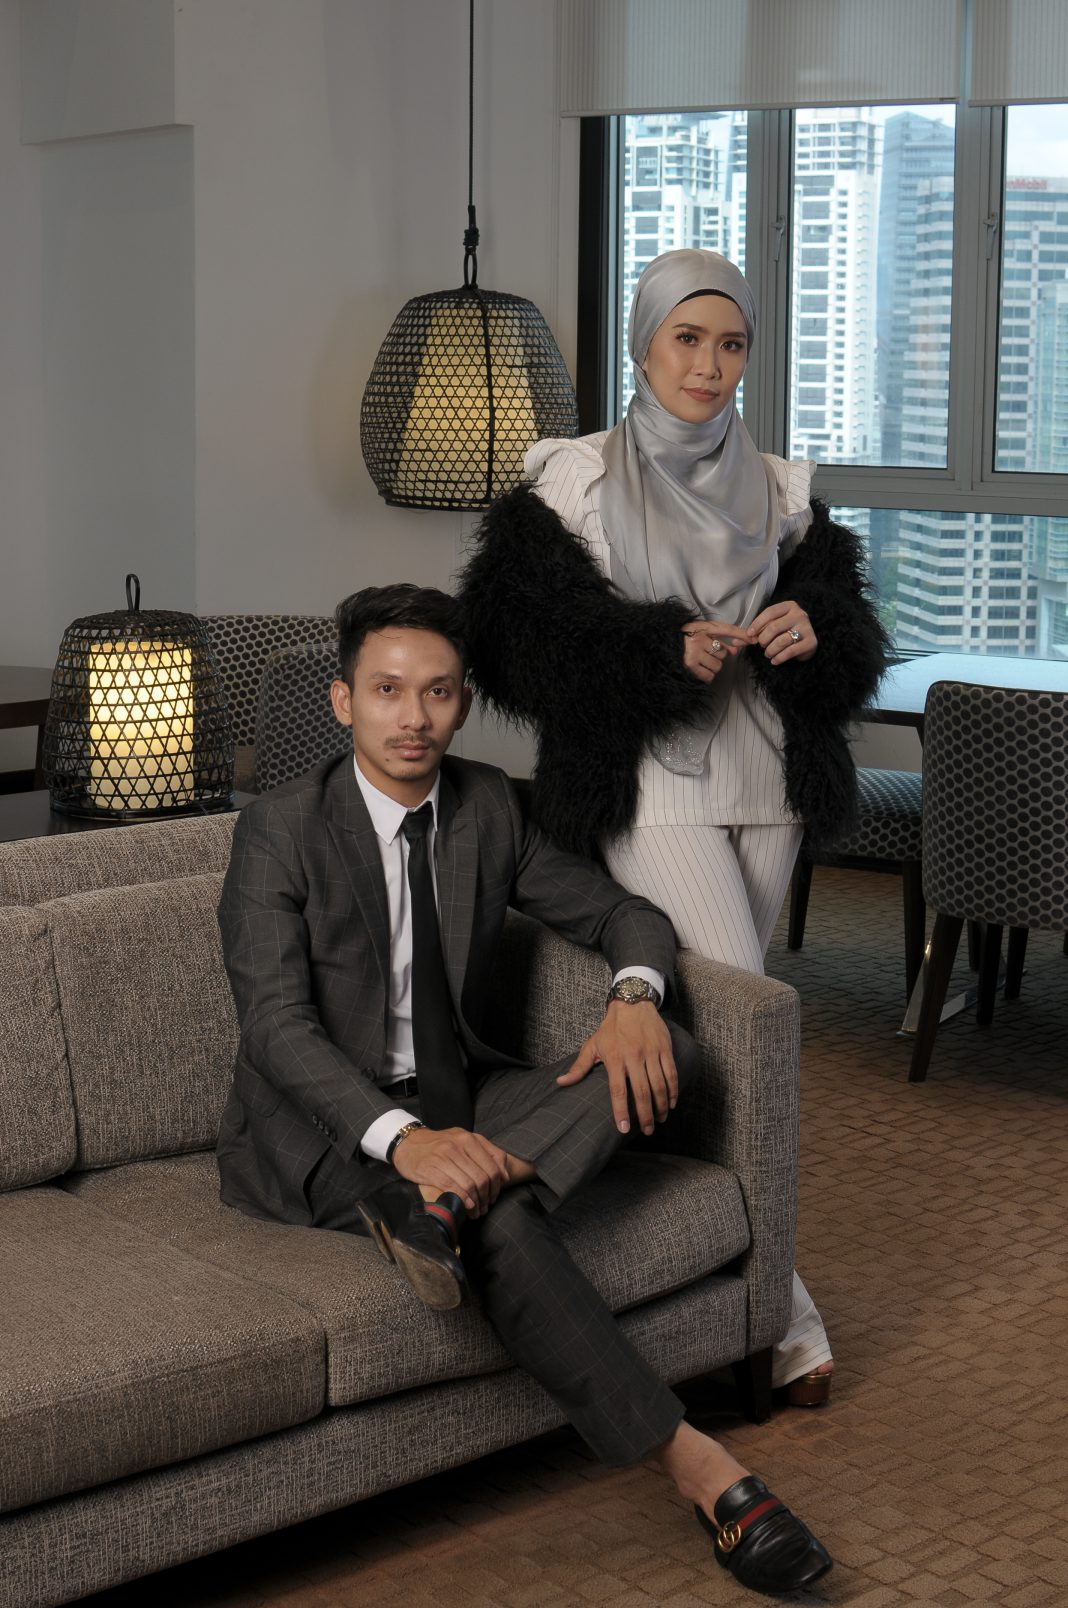 Shah Hafiz,DYXY Cosmetics, run as a partnership with wife, Dyana Roslan.